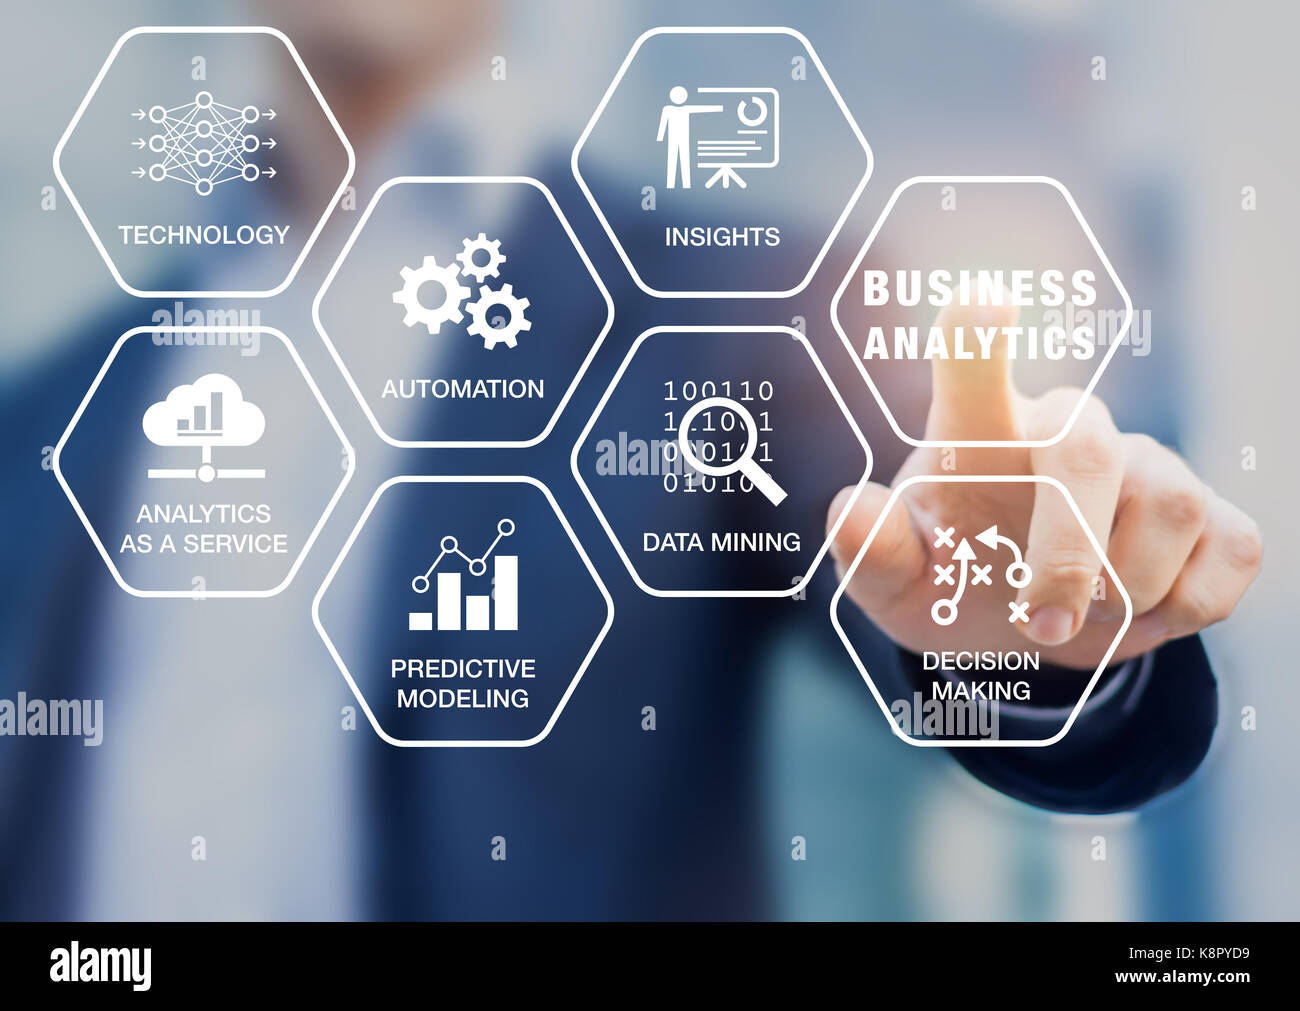 Business Analytics (BA) technology uses data mining, automation and predictive modeling for useful insights and - Stock Image